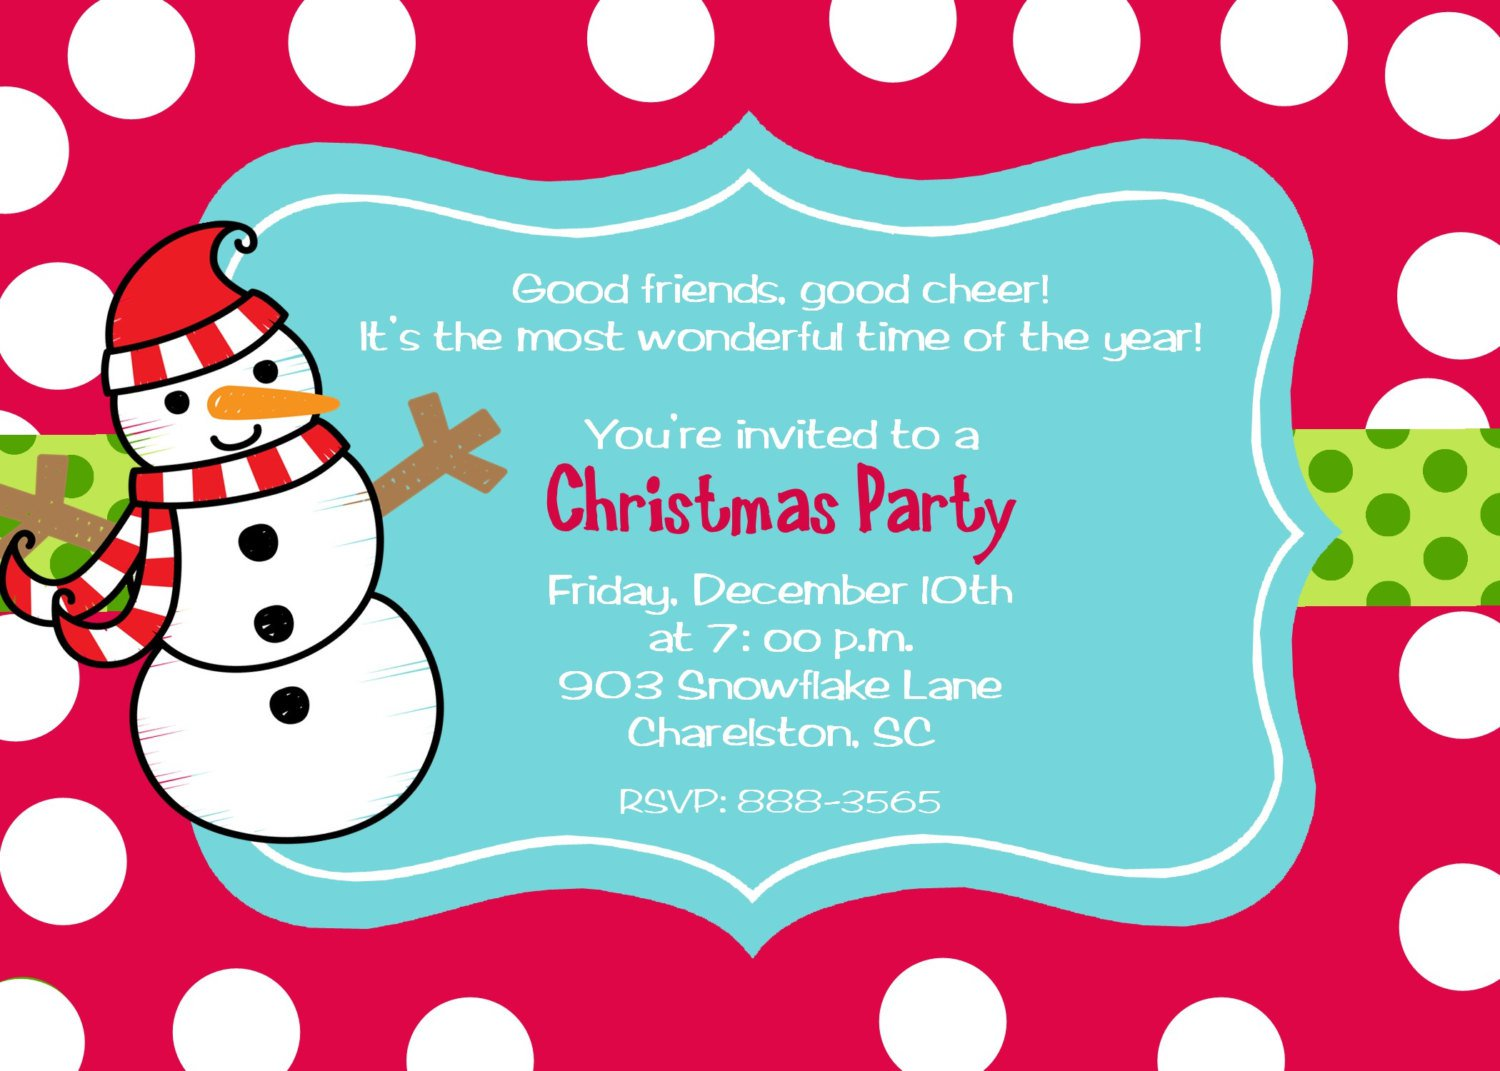 Christmas Party Invitation Wording Humorous